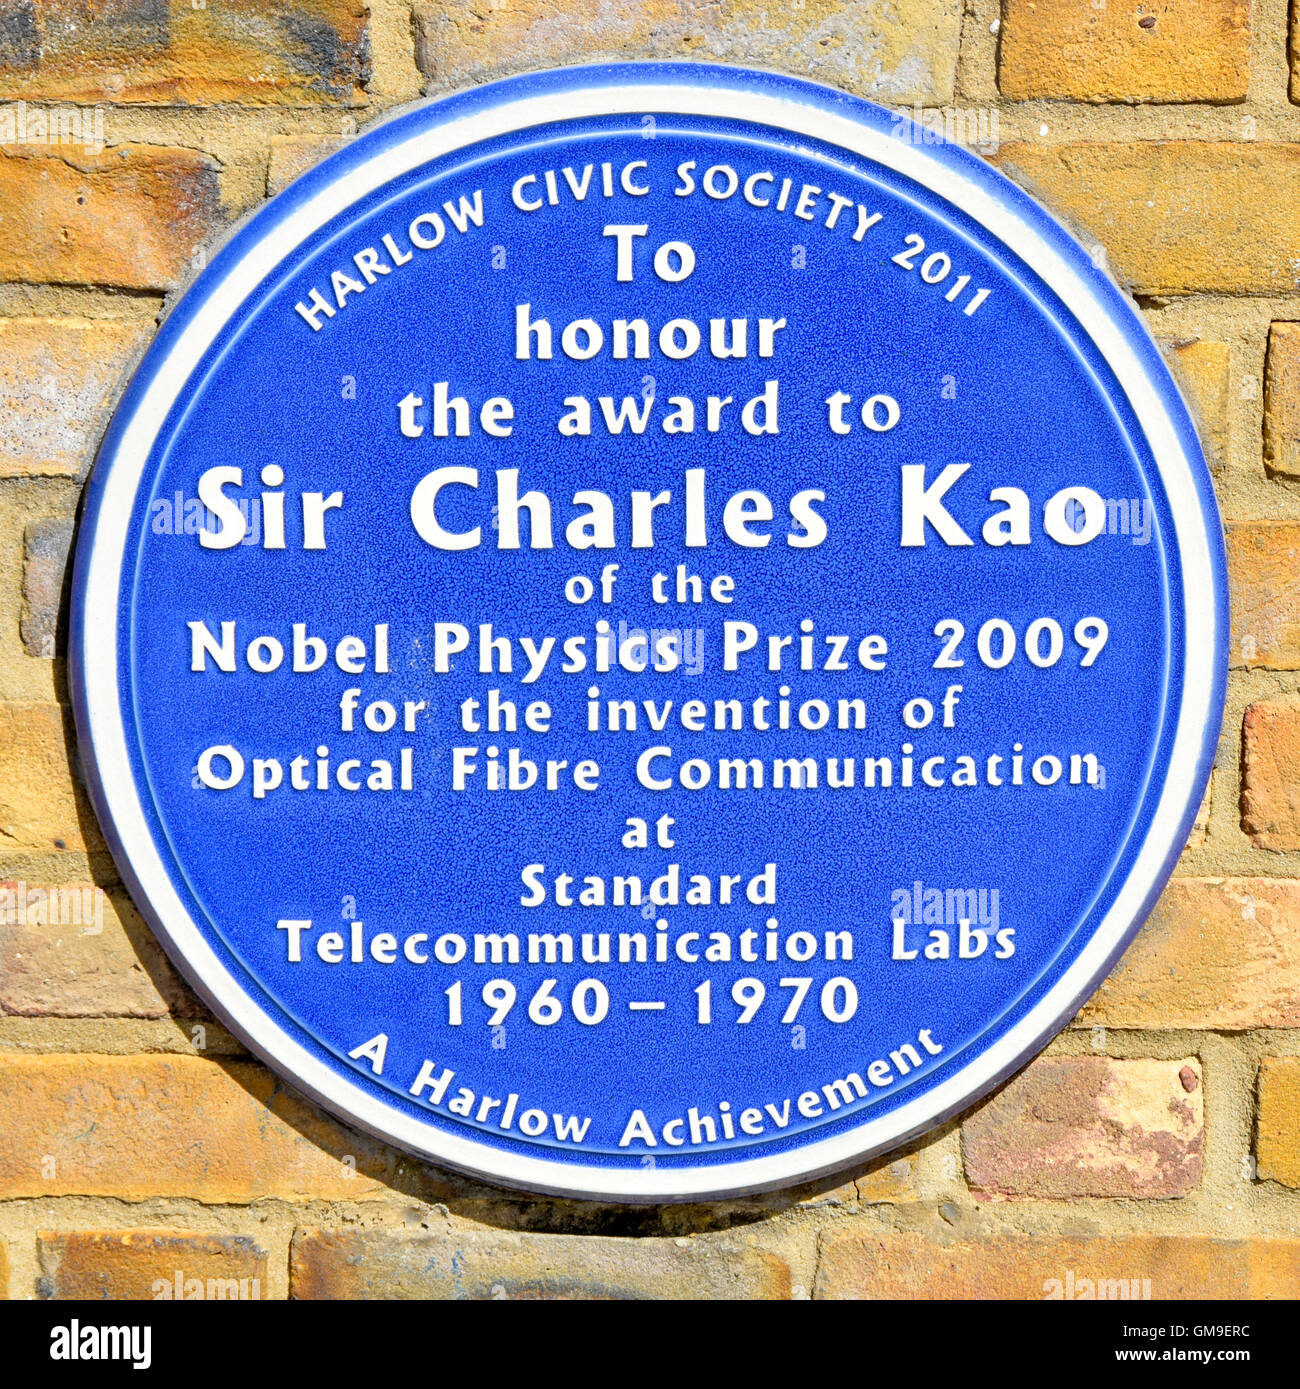 Blue Plaque Harlow Essex England UK Civic Centre to honour the award of the Nobel Physics Prize 2009 to Sir Charles - Stock Image